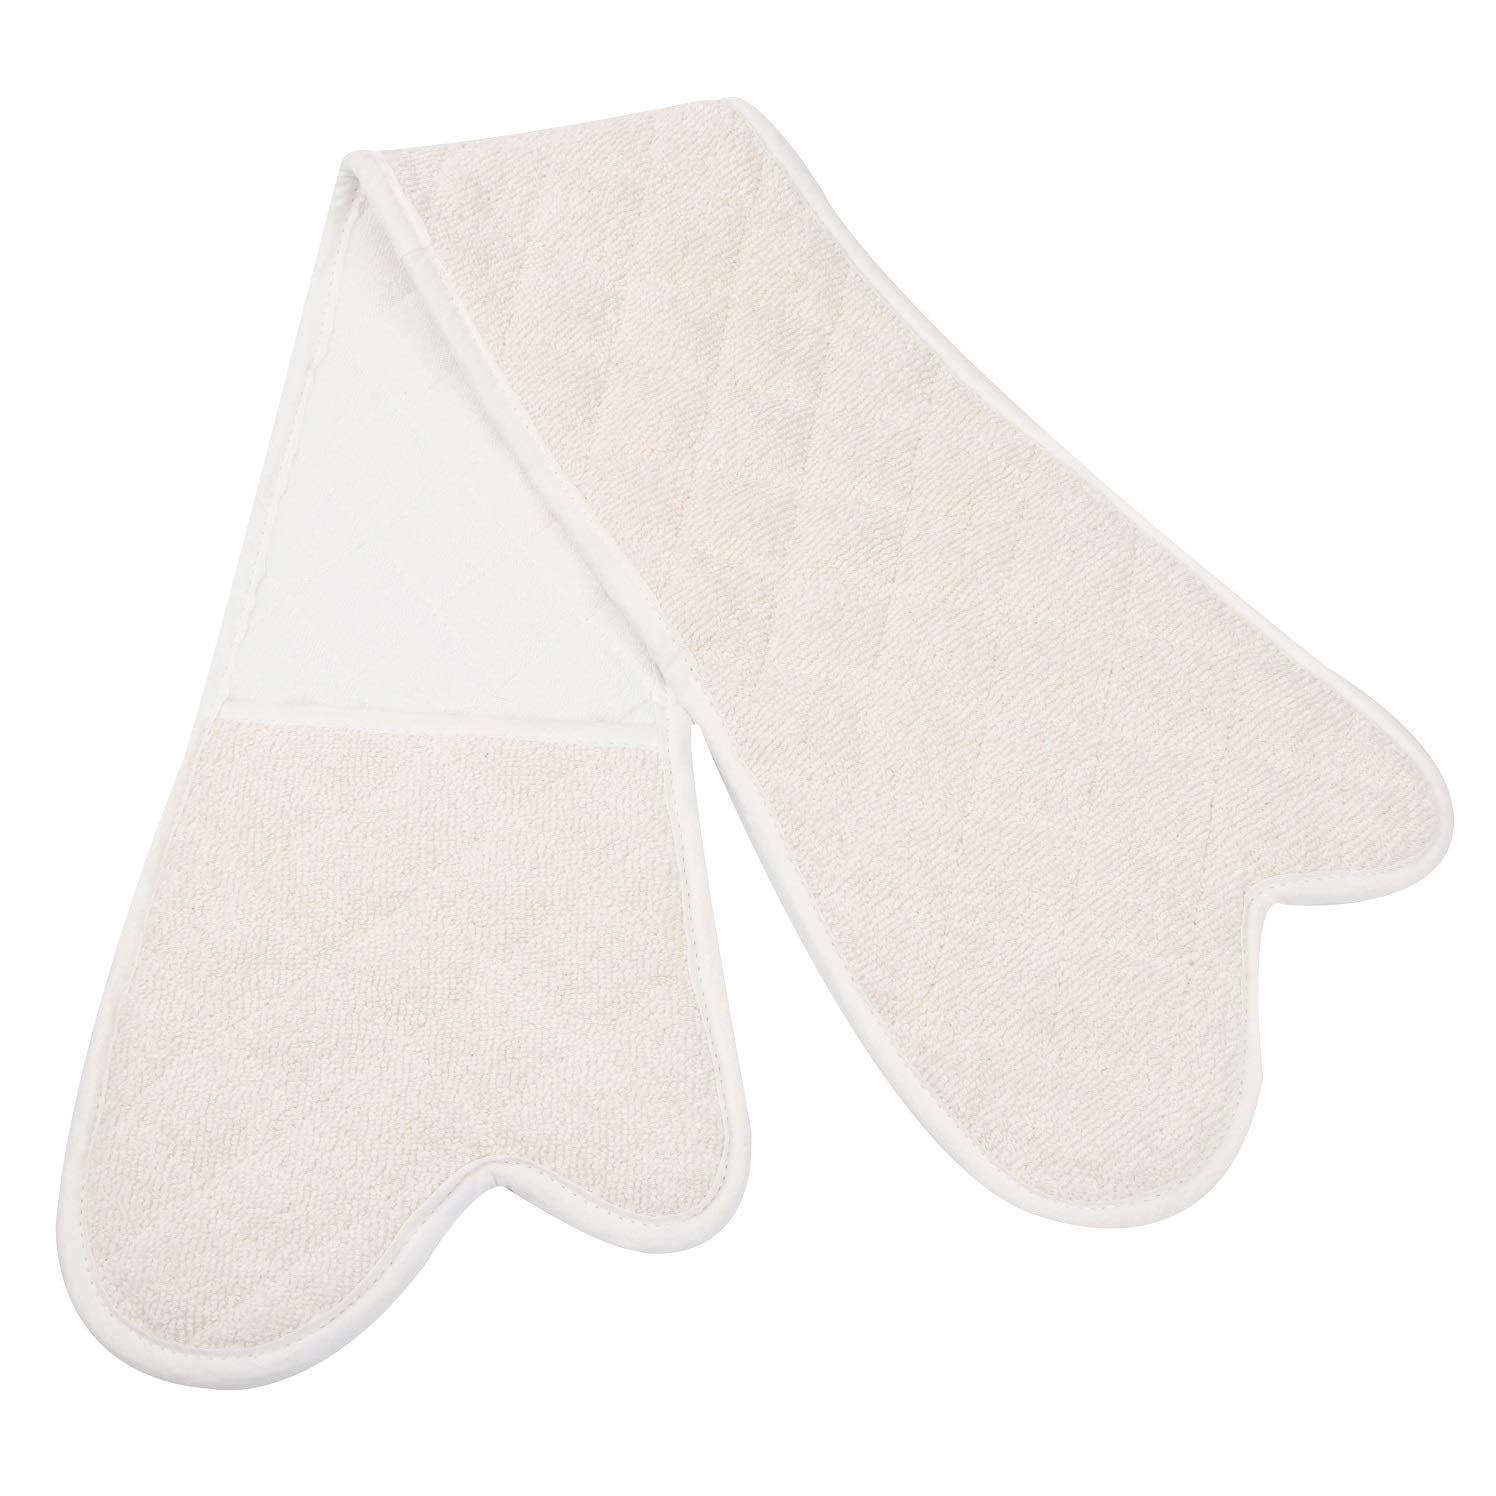 Cimostar Double Oven Gloves/Mitt,Extra Long Cotton Potholder Gloves,Heat Resistant Baking Glove,Machine Washable 35 x 7.5